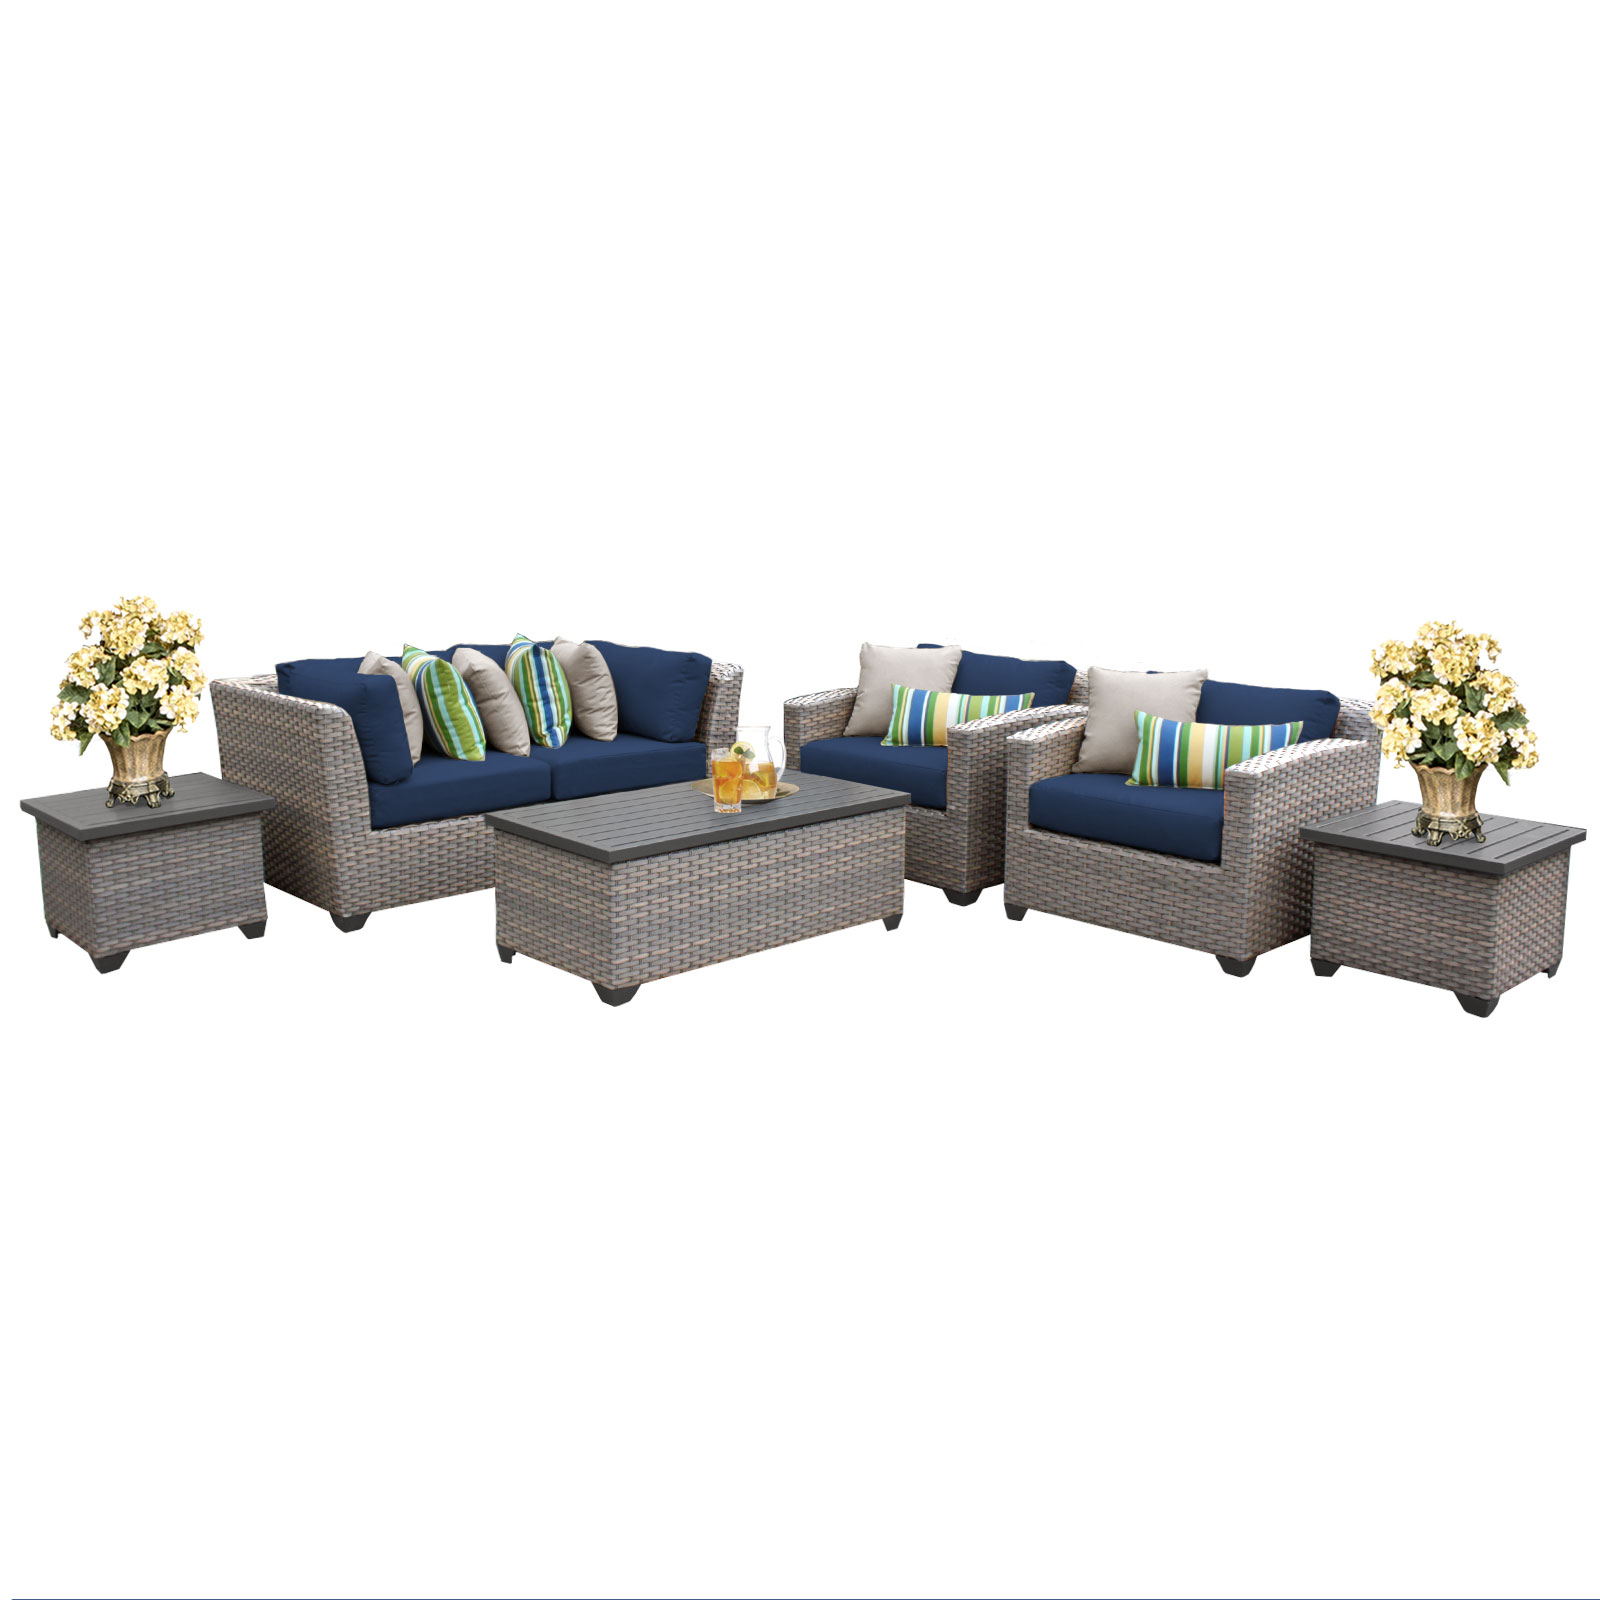 Catalina 7 Piece Outdoor Wicker Patio Furniture Set 07d